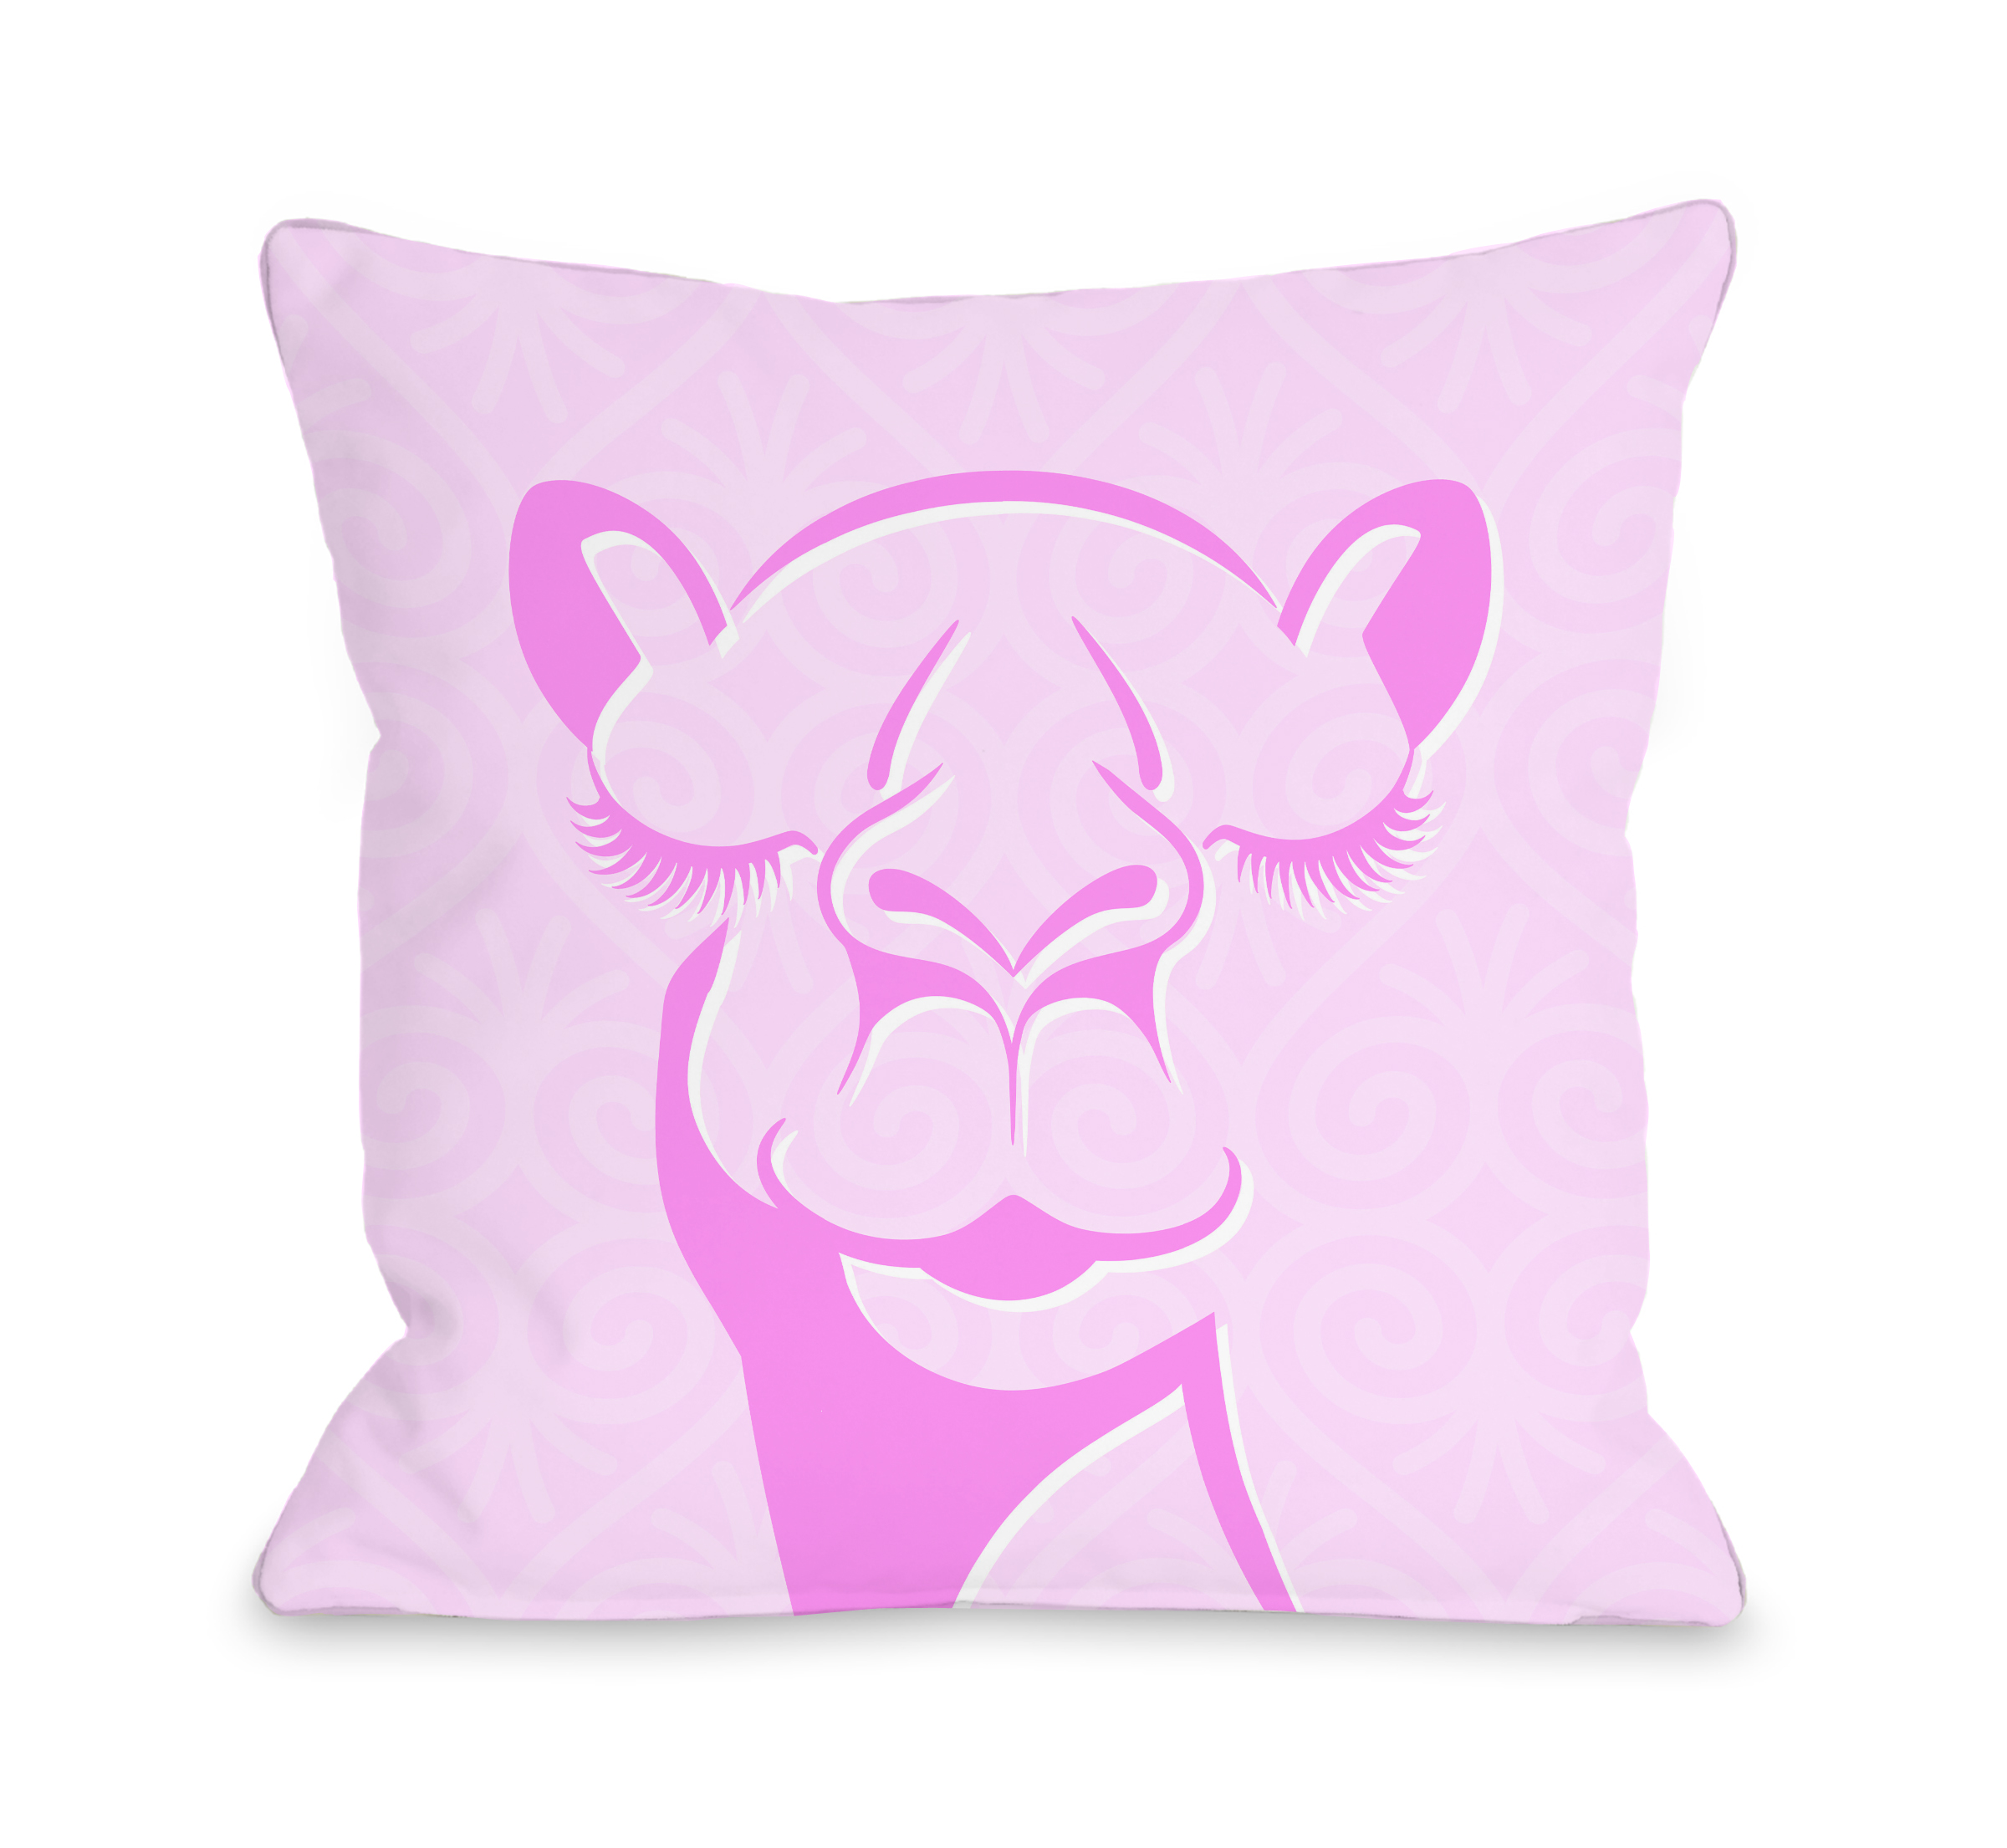 Camel - Pink 16x16 Pillow by OBC